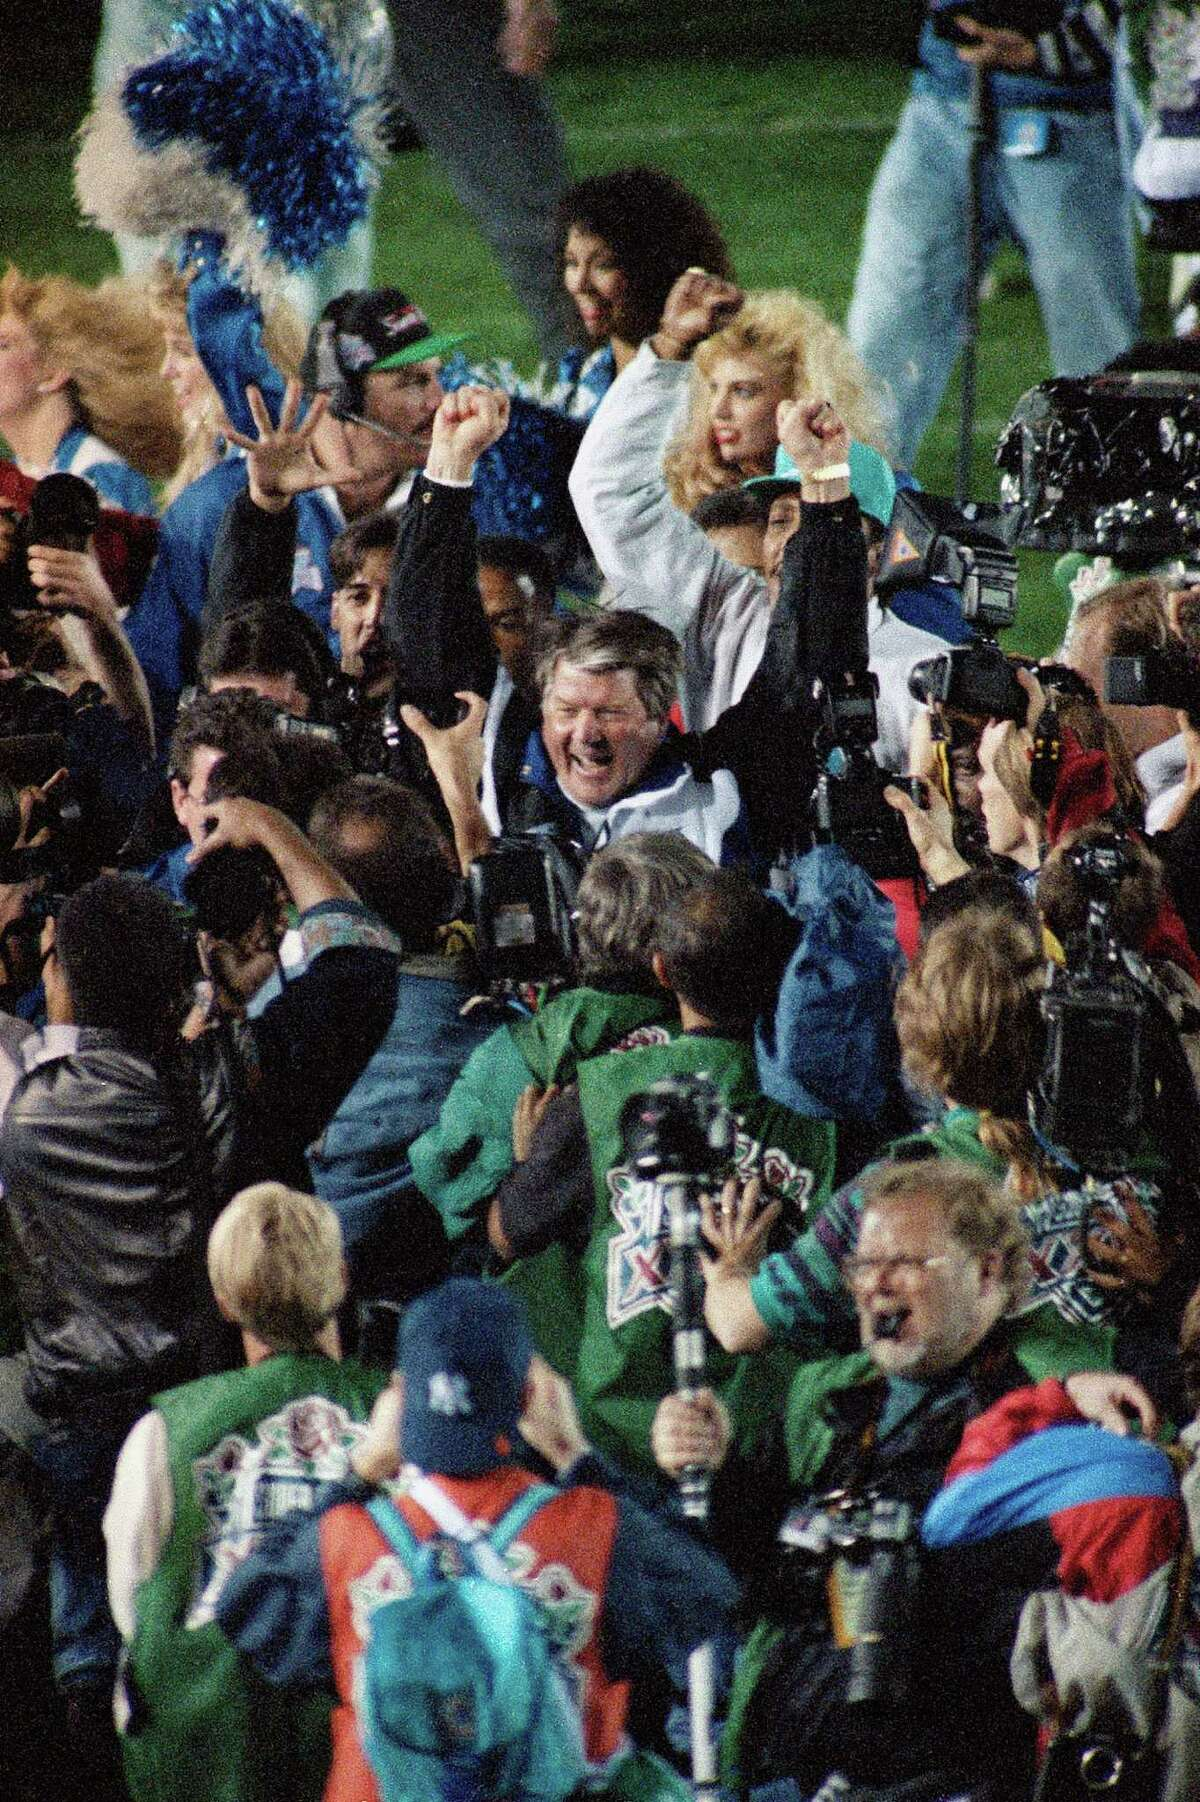 Dallas Cowboy coach Jimmy Johnson raises his arms in celebration after his team's 52-17 victory over the Buffalo Bill in the Super Bowl, Sunday, Jan. 31, 1993 in Pasadena. (AP Photo/Doug Pizac)